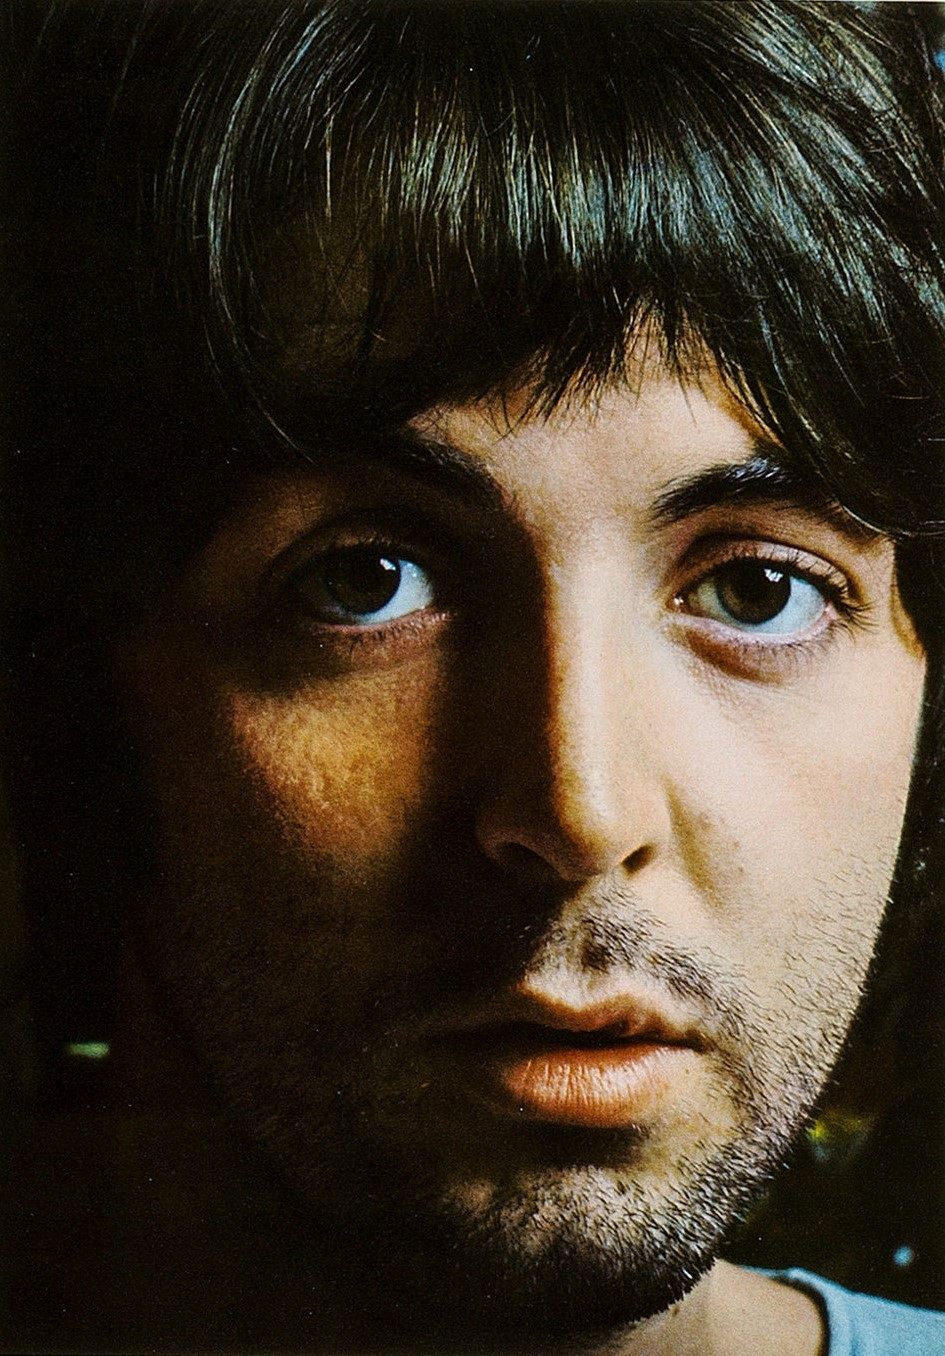 The Beatles Paul McCartney Apple Records Promotional Image